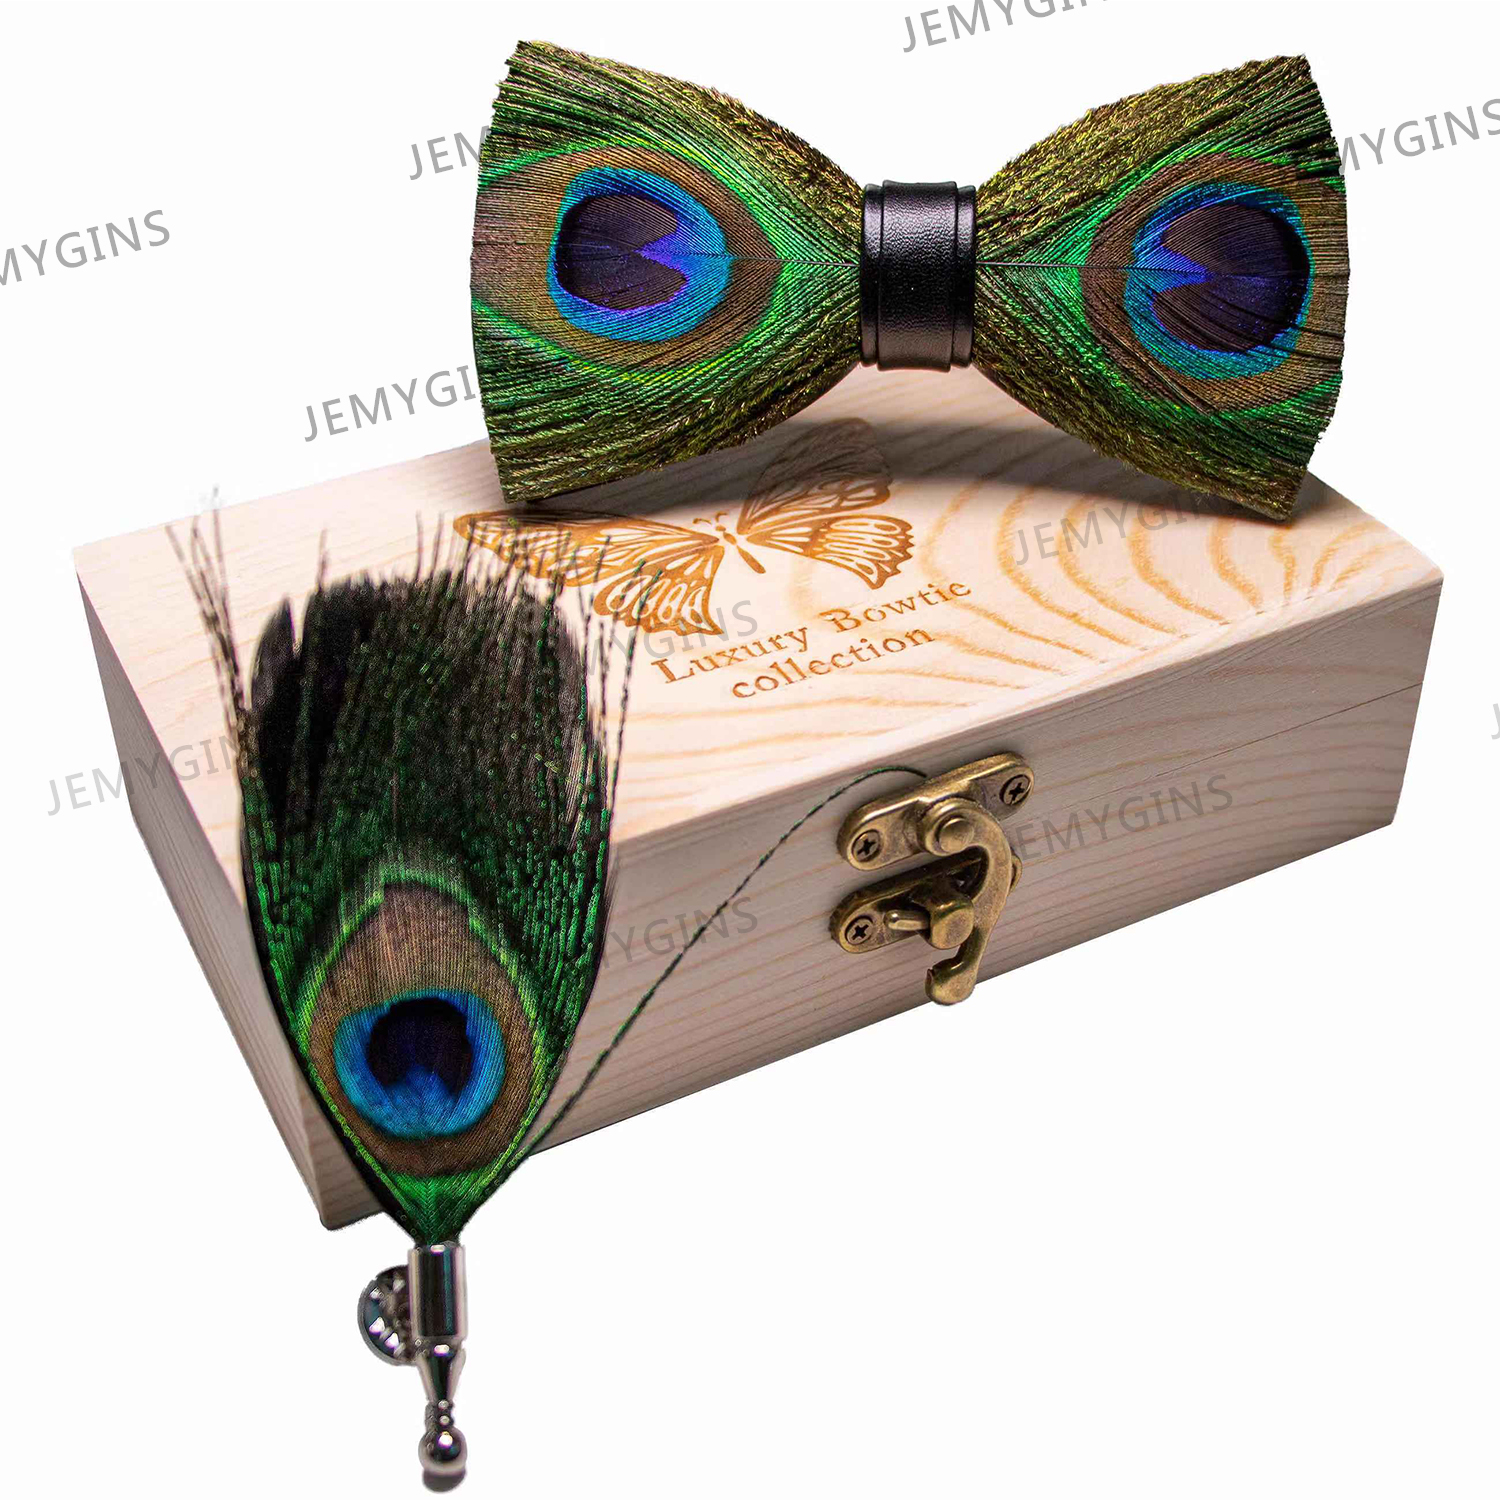 JEMYGINS Original Bow Tie Peacock Feather Handmade Leather Bow Tie Brooch Pine Gift Set Wedding Party Men's Suit Bowtie Necktie